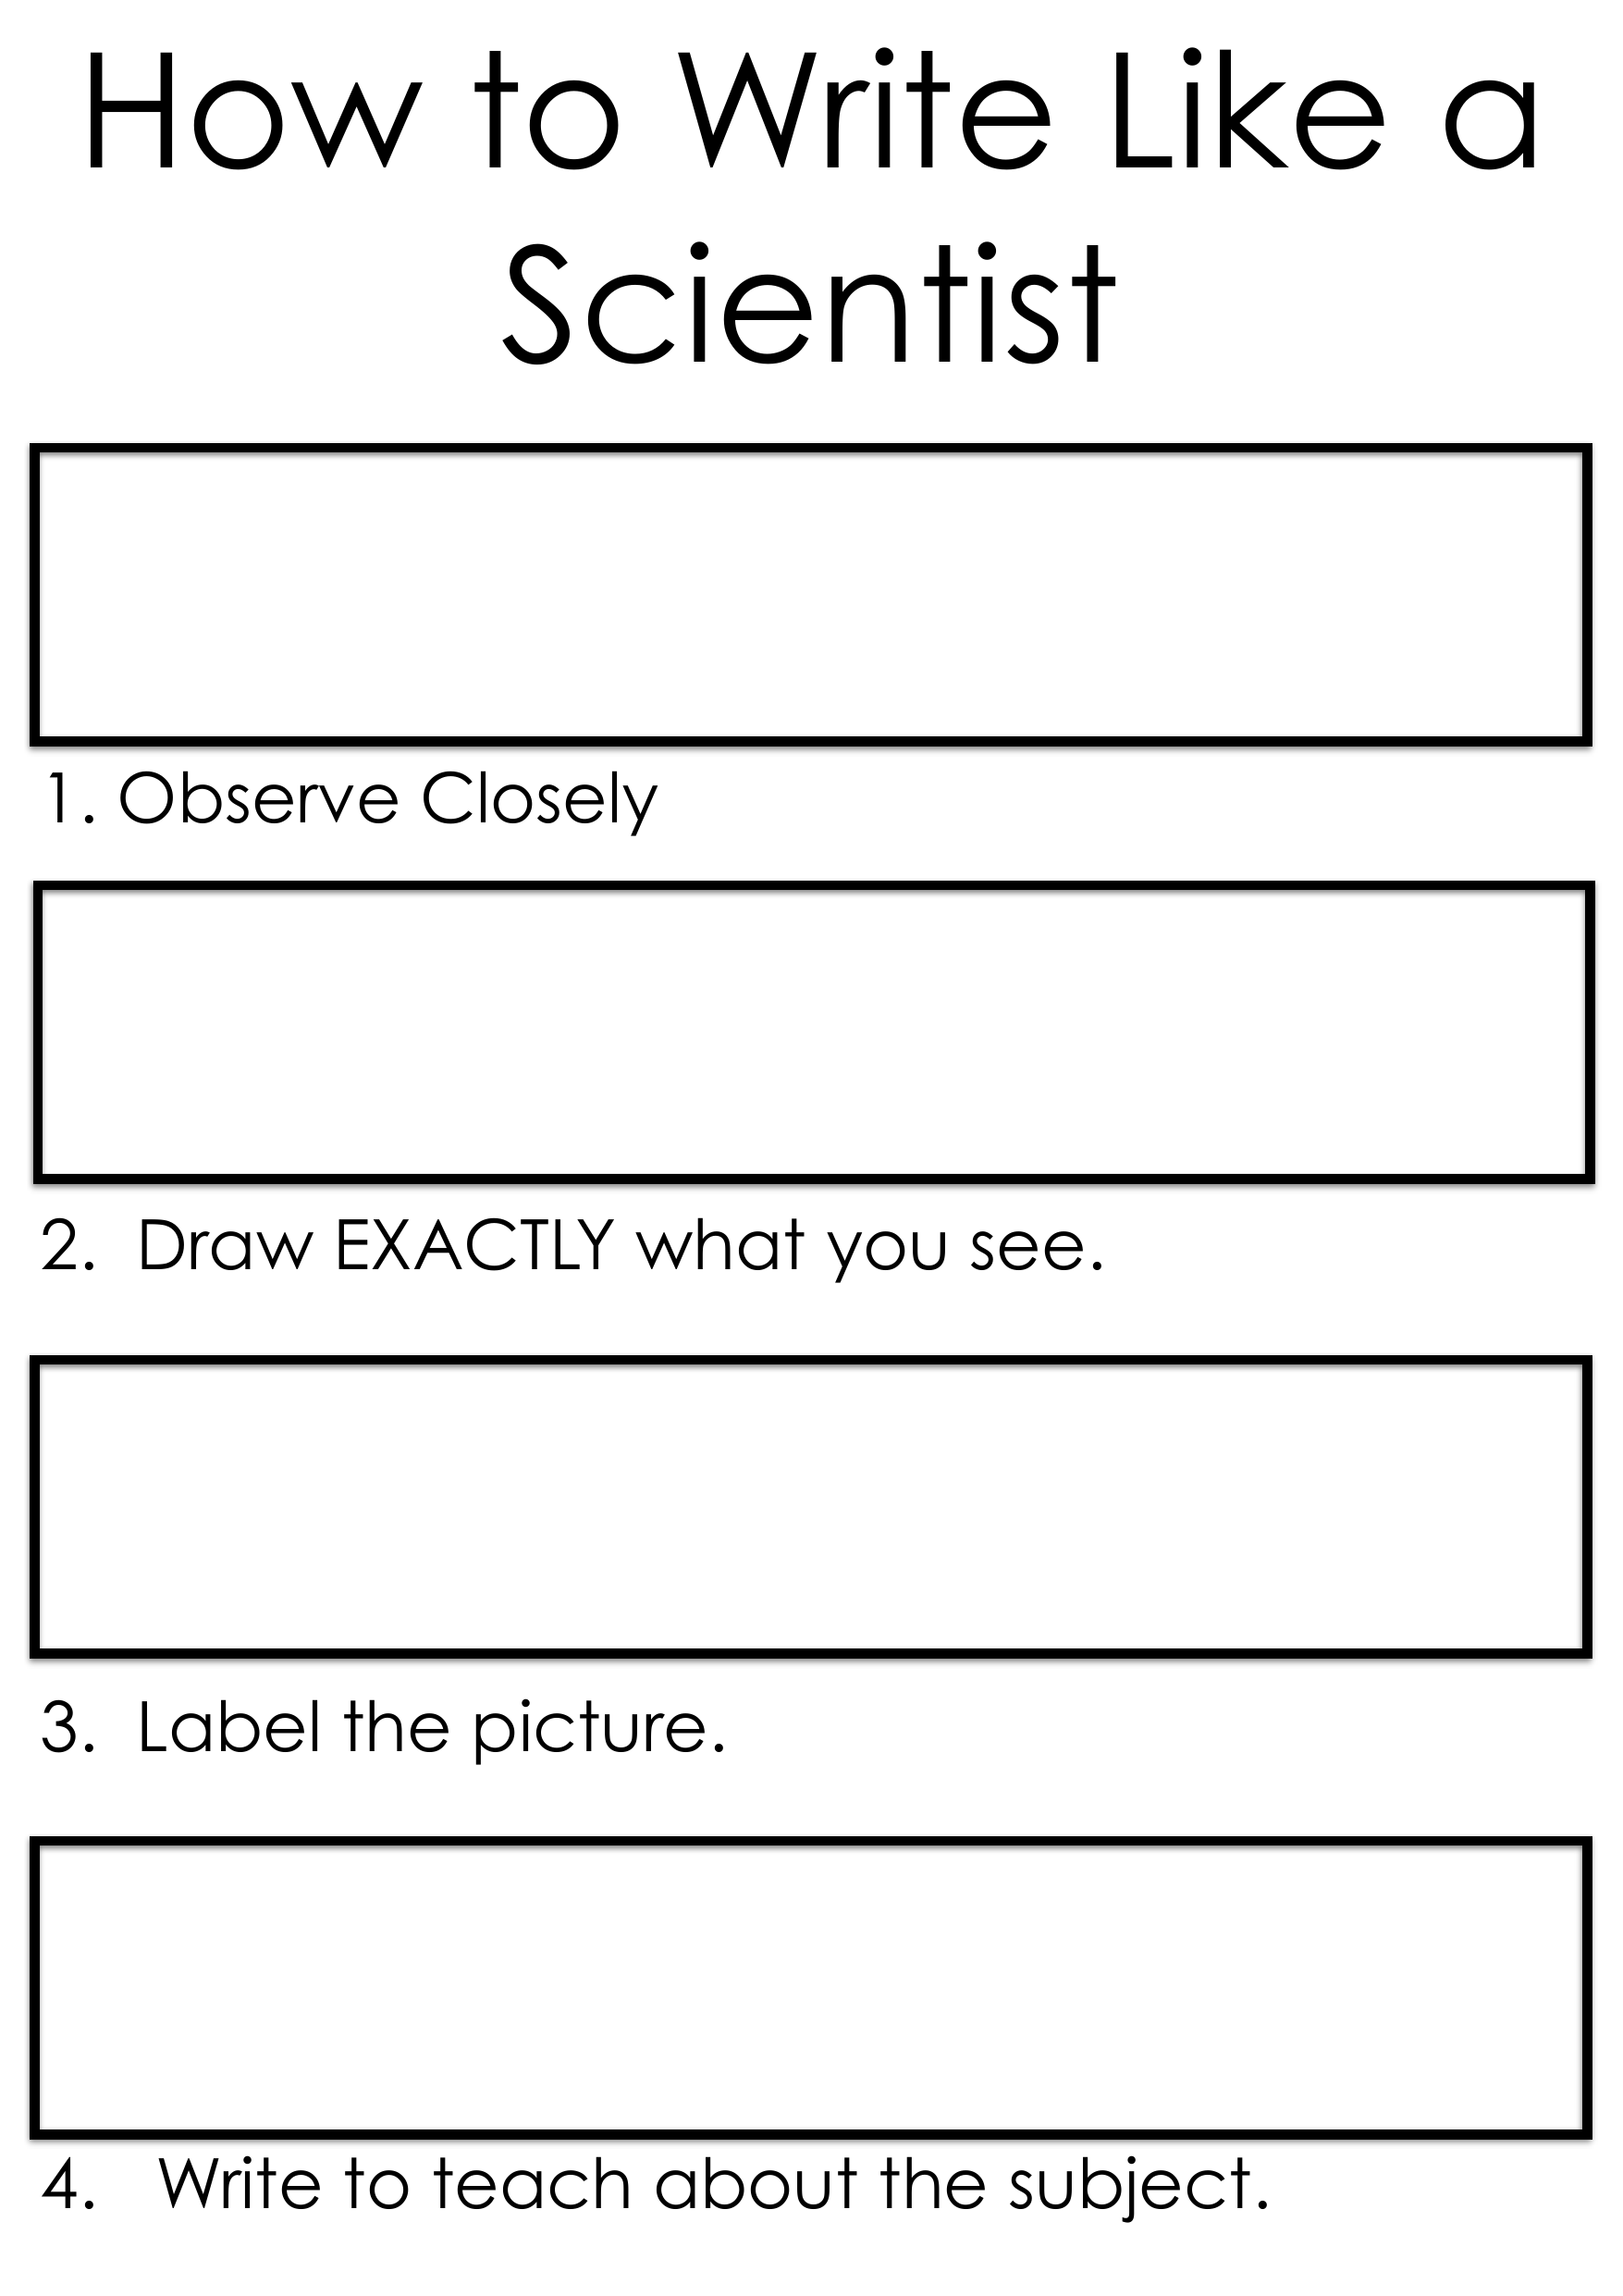 Write like a Scientist Resource Preview